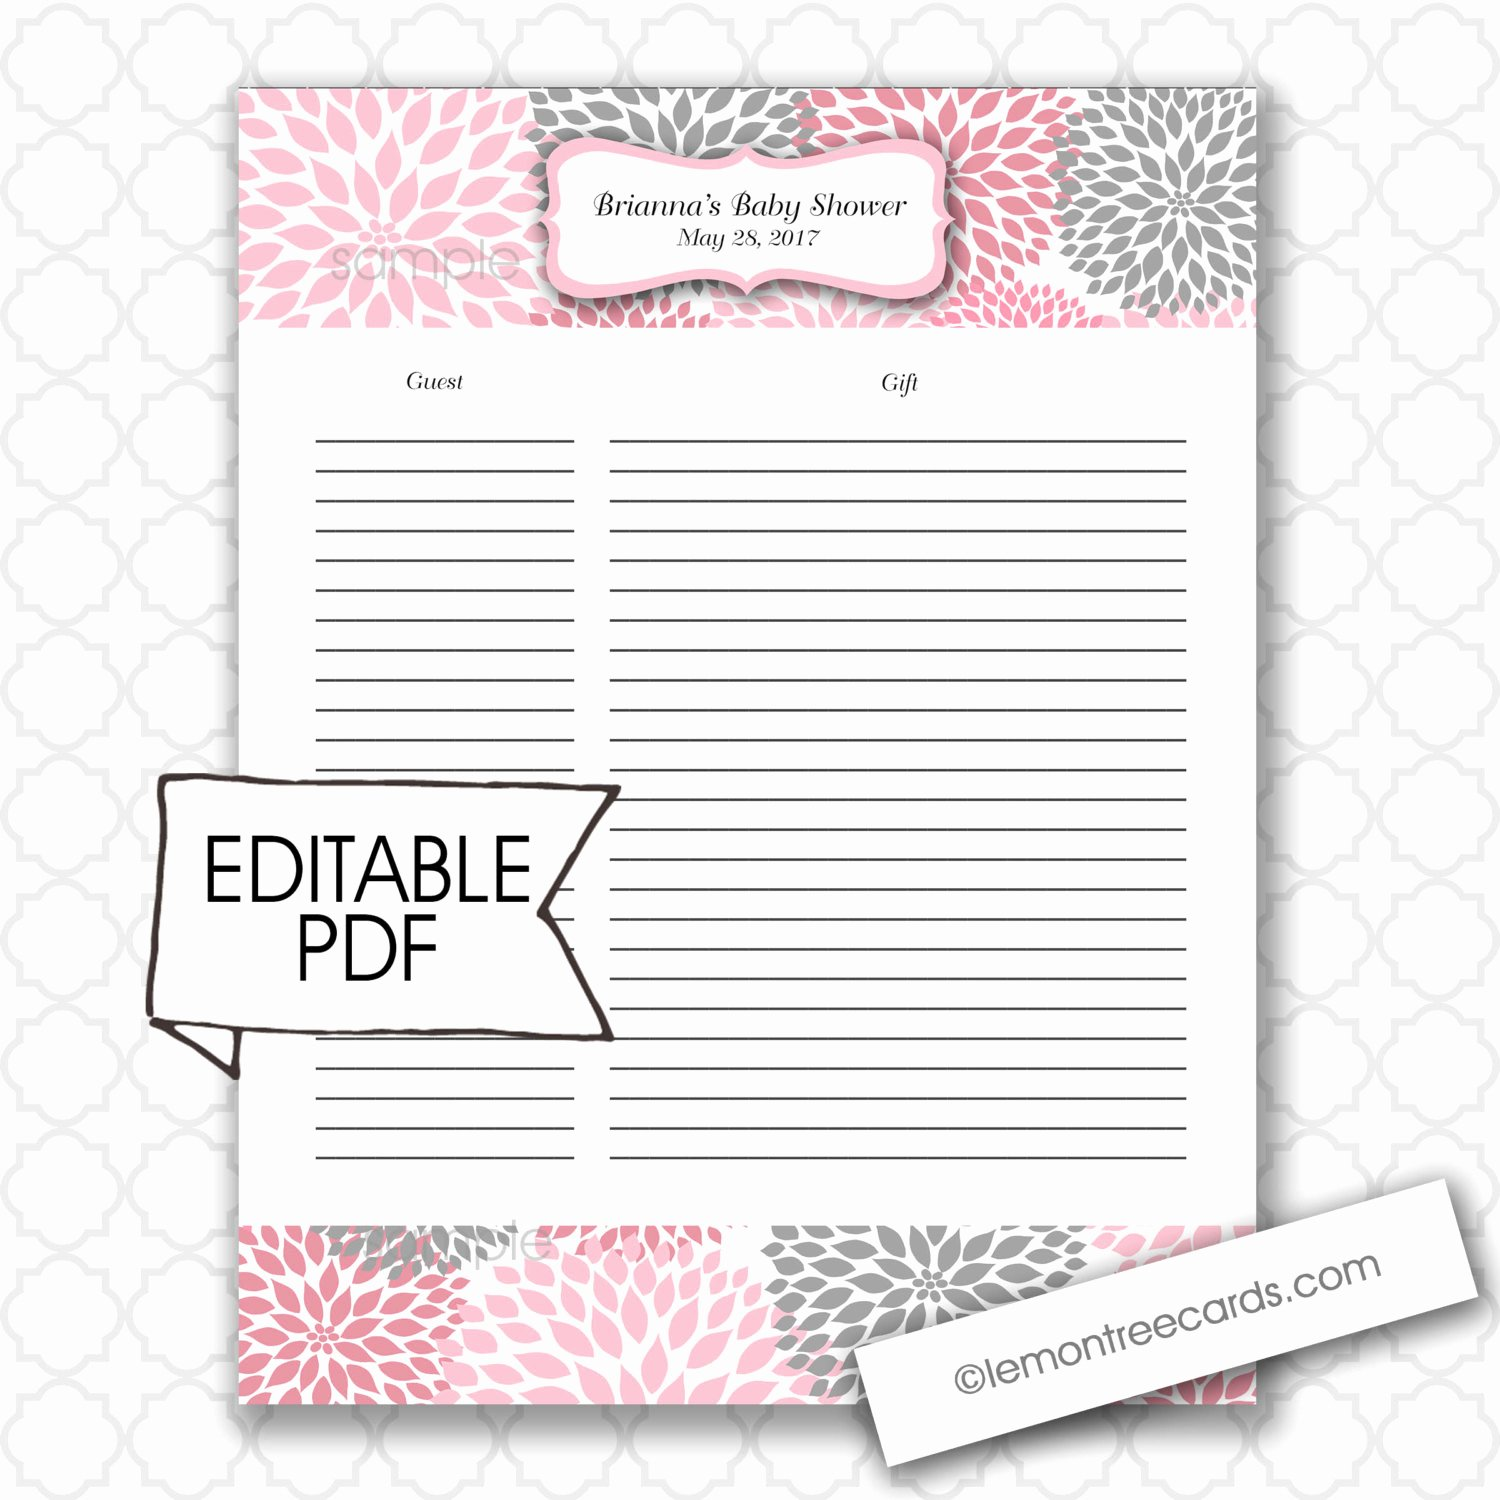 Baby Shower Guest List Template Unique Editable Baby Shower Gift List and Guest List Girl Baby